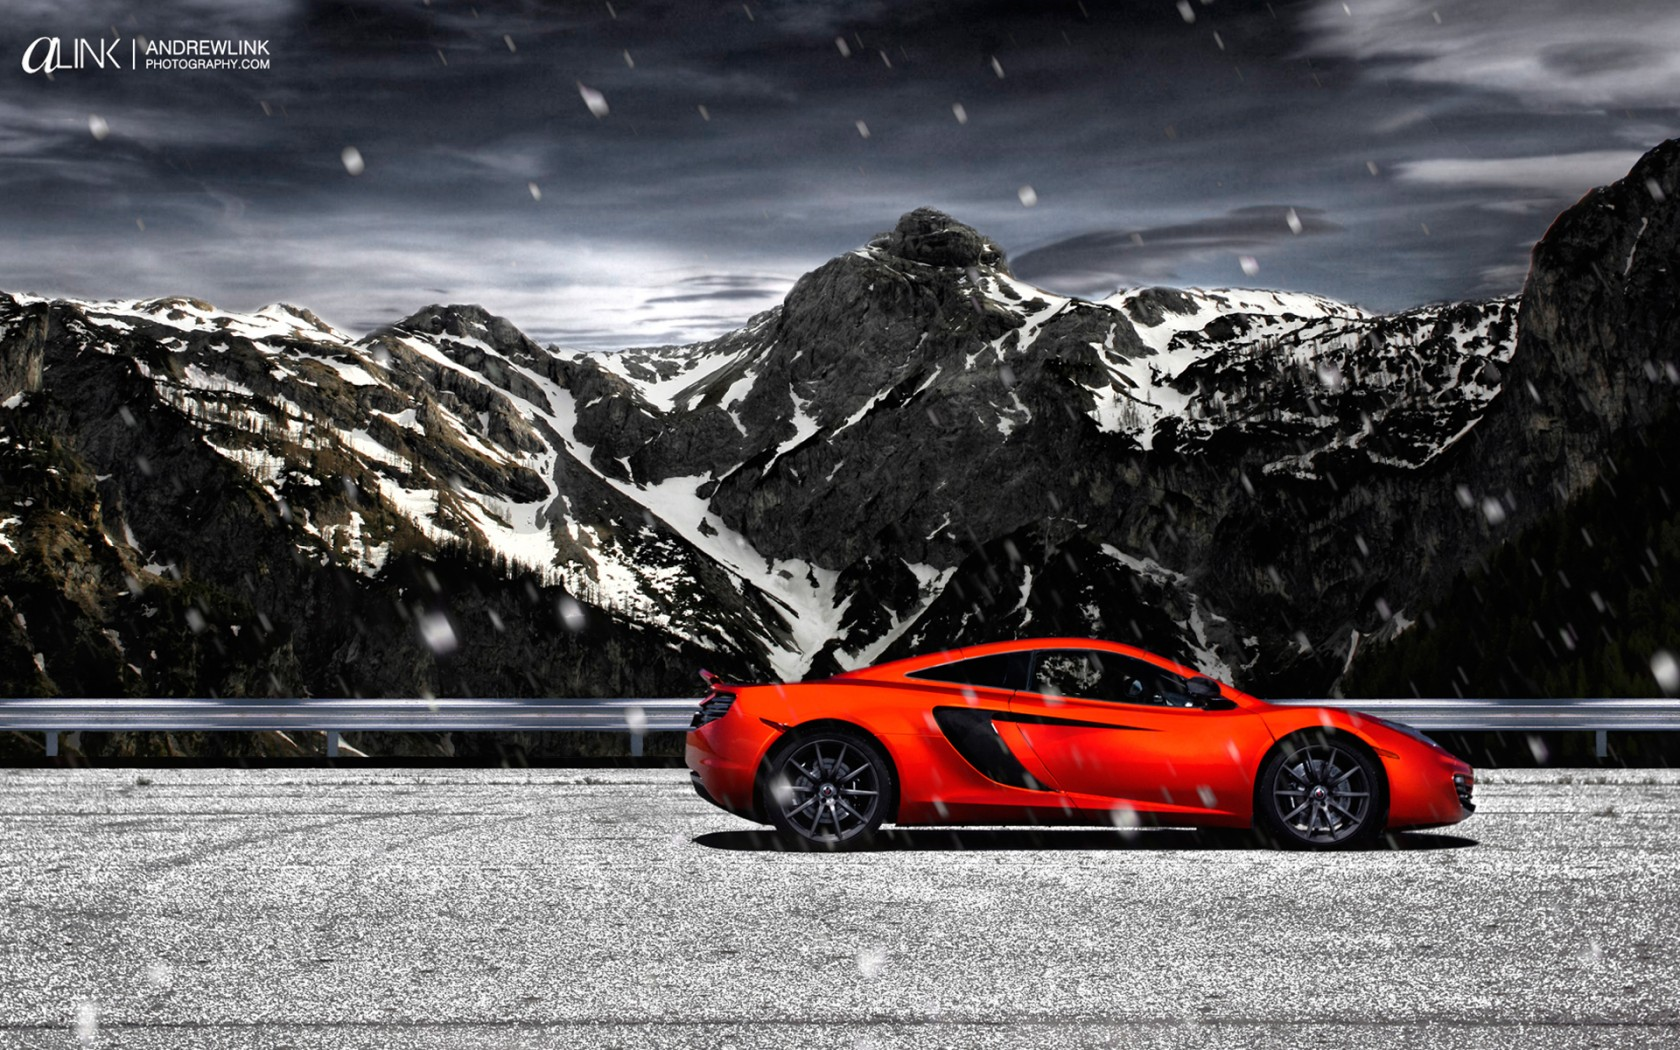 Bmw Cars Wallpapers 2012 Hd Mclaren Mp4 12c Wallpaper Hd Car Wallpapers Id 2931